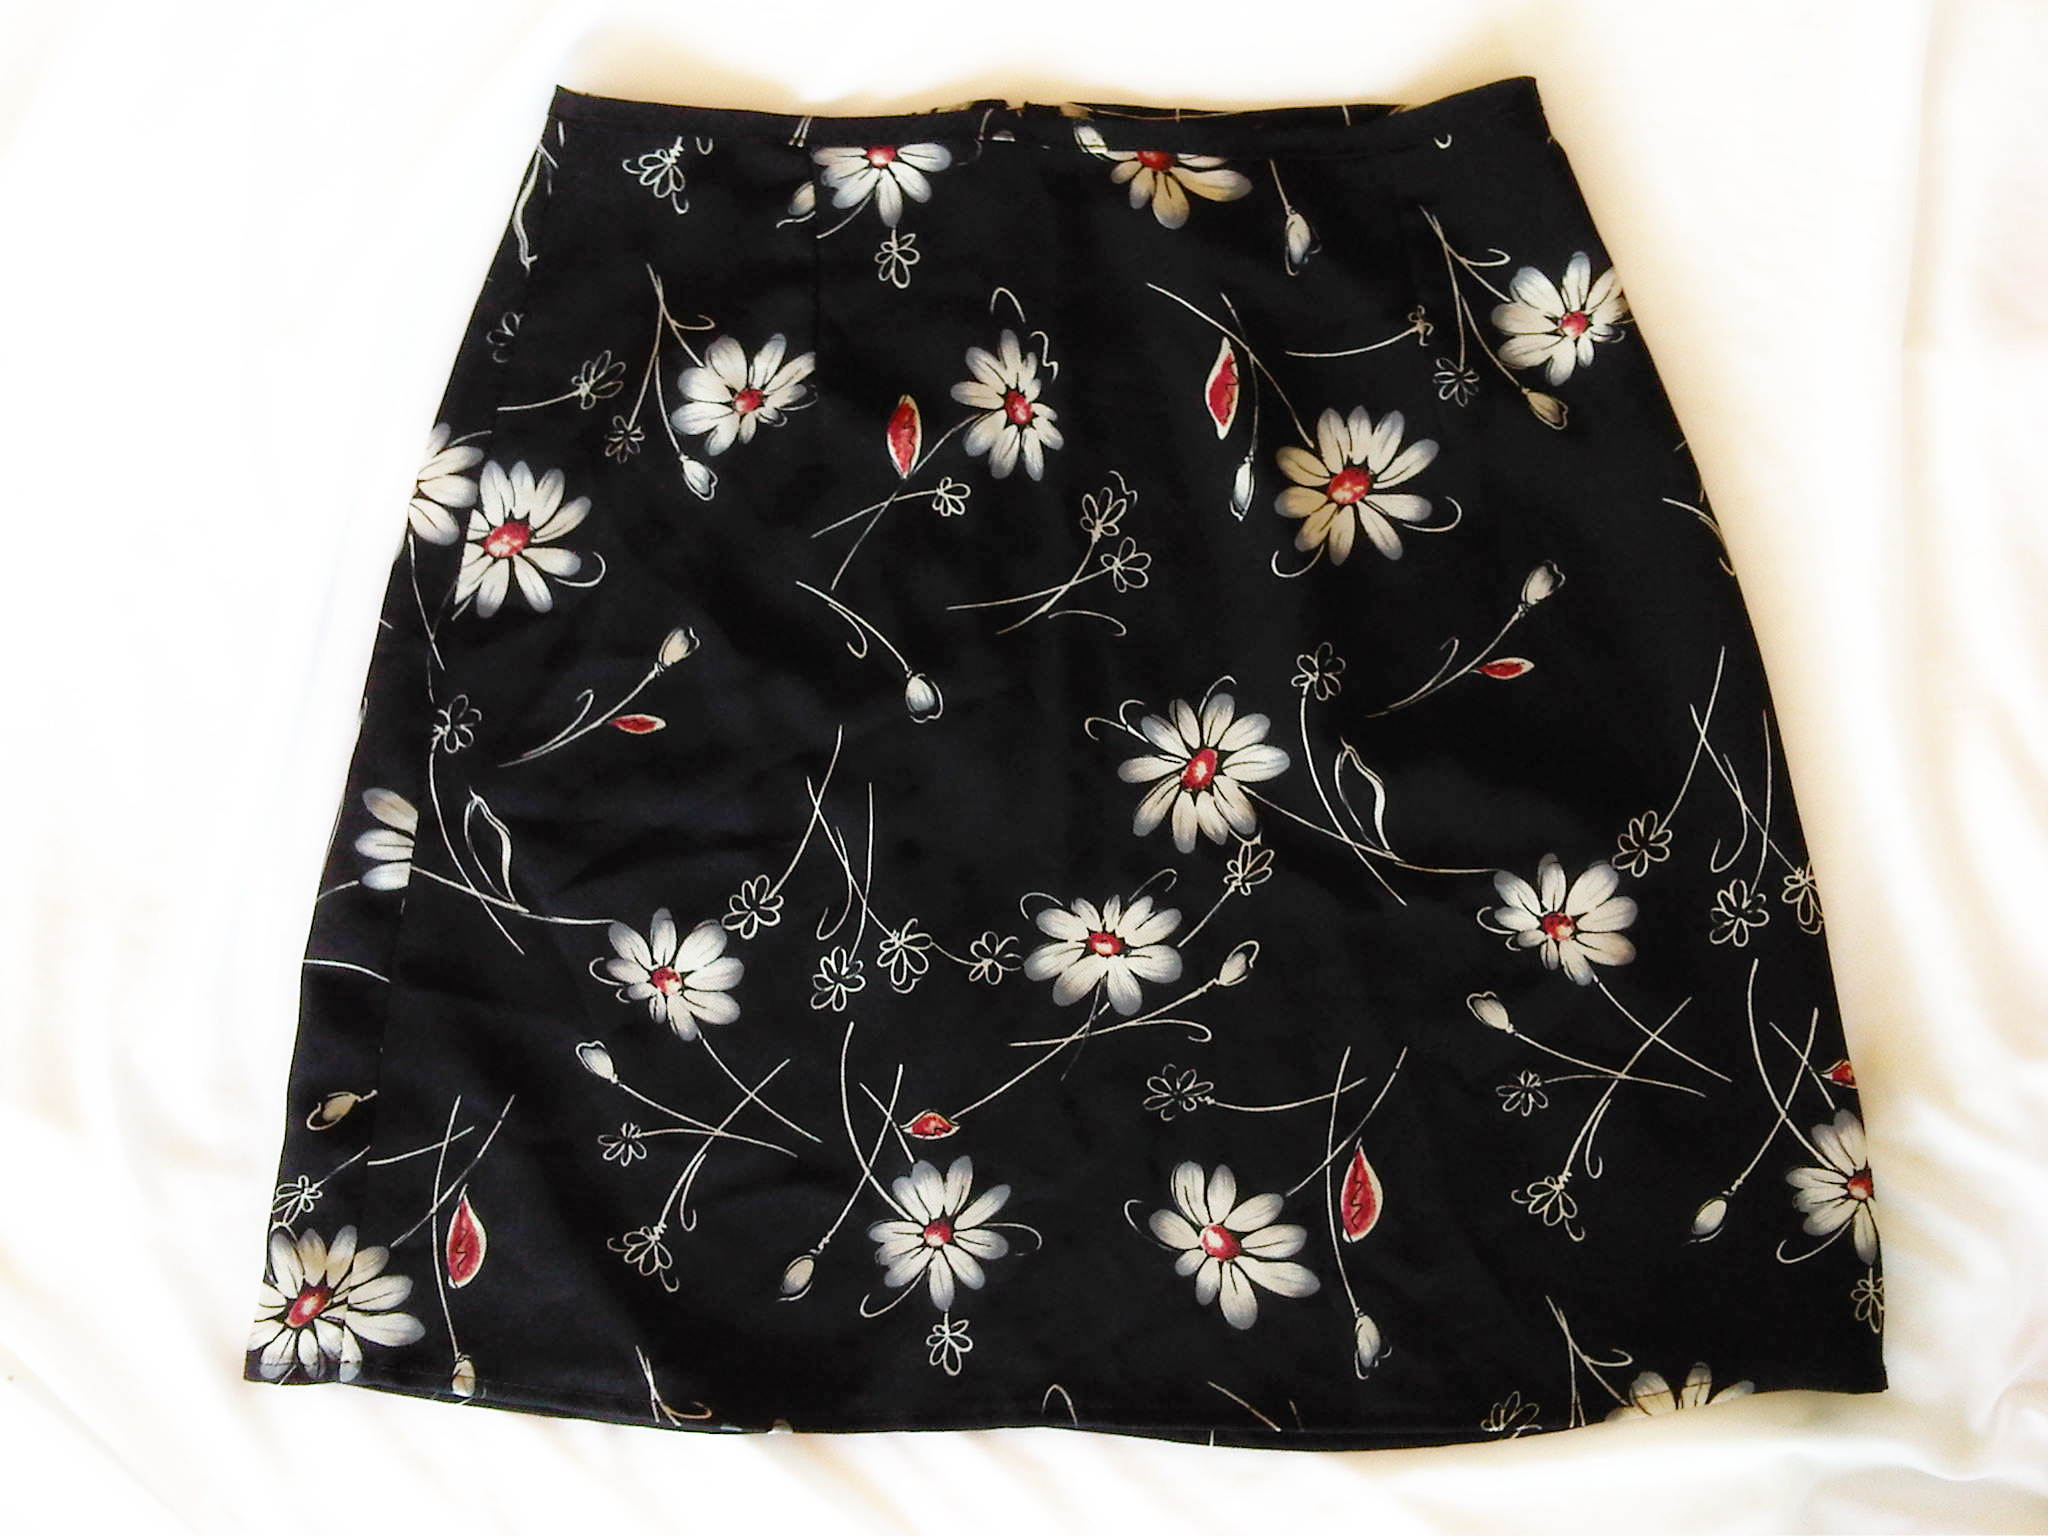 Womens Black Skirt With White Red Flowers Size 12 Style My Way